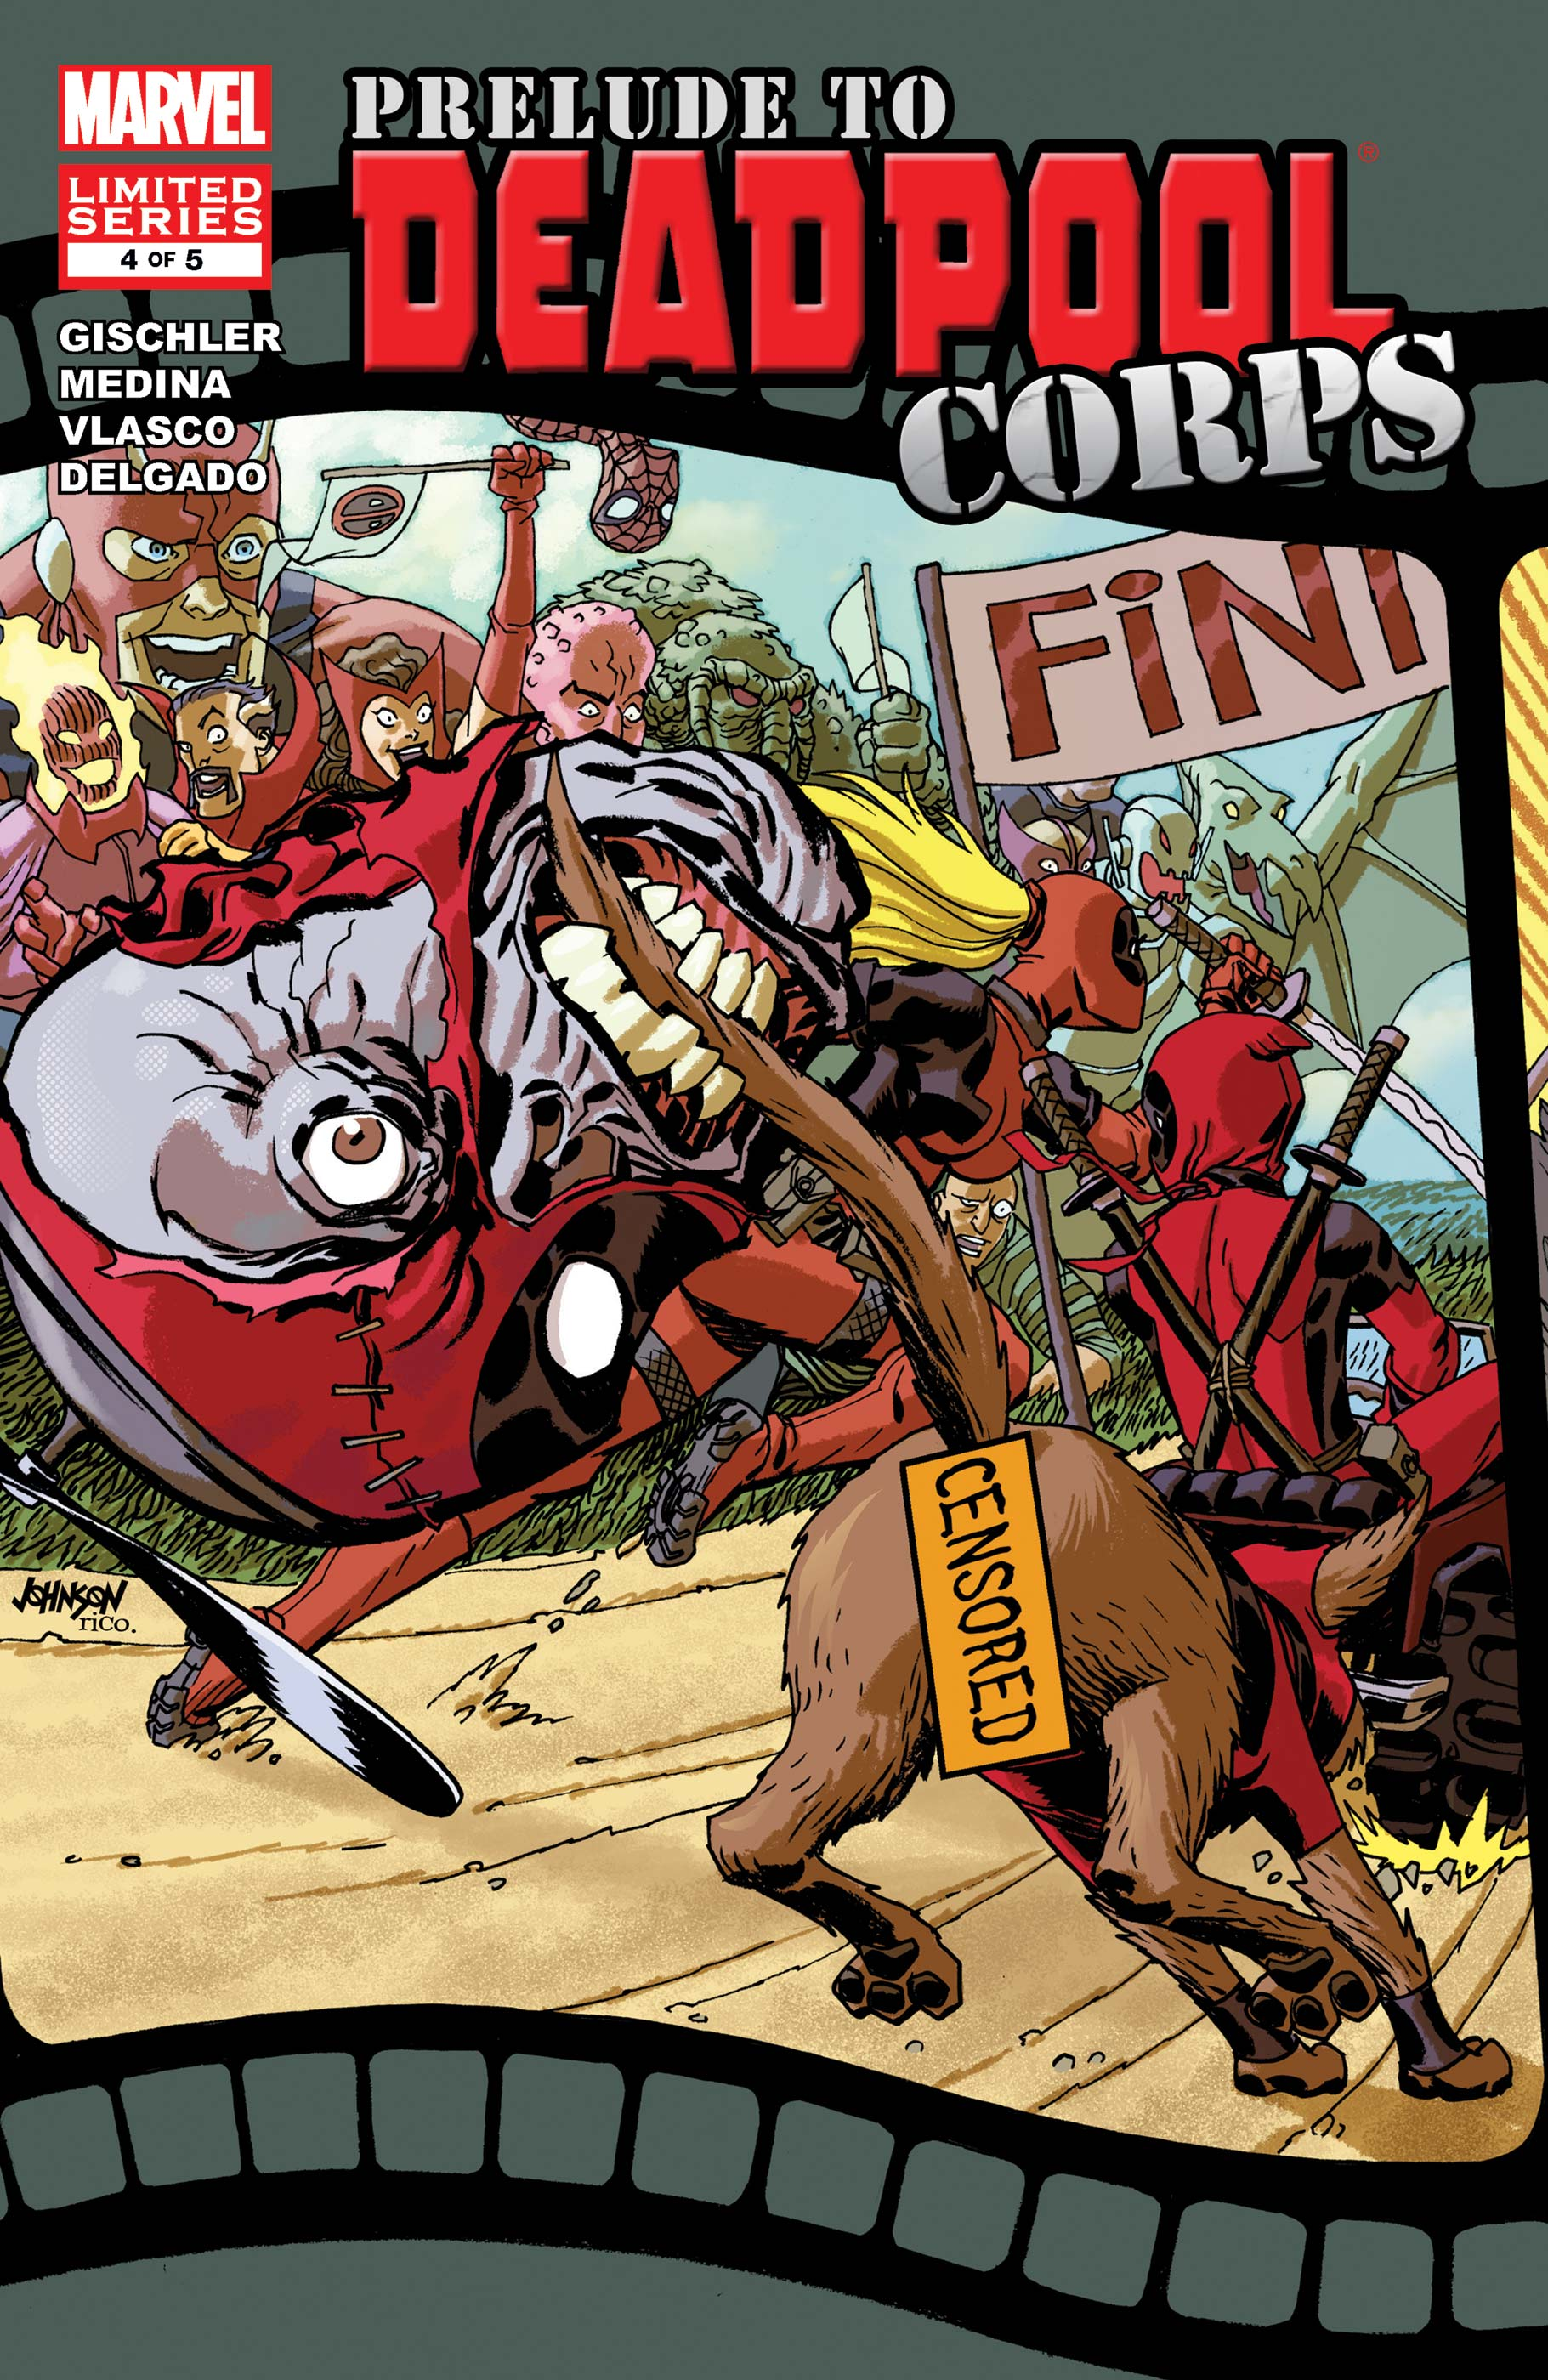 Prelude to Deadpool Corps (2010) #4